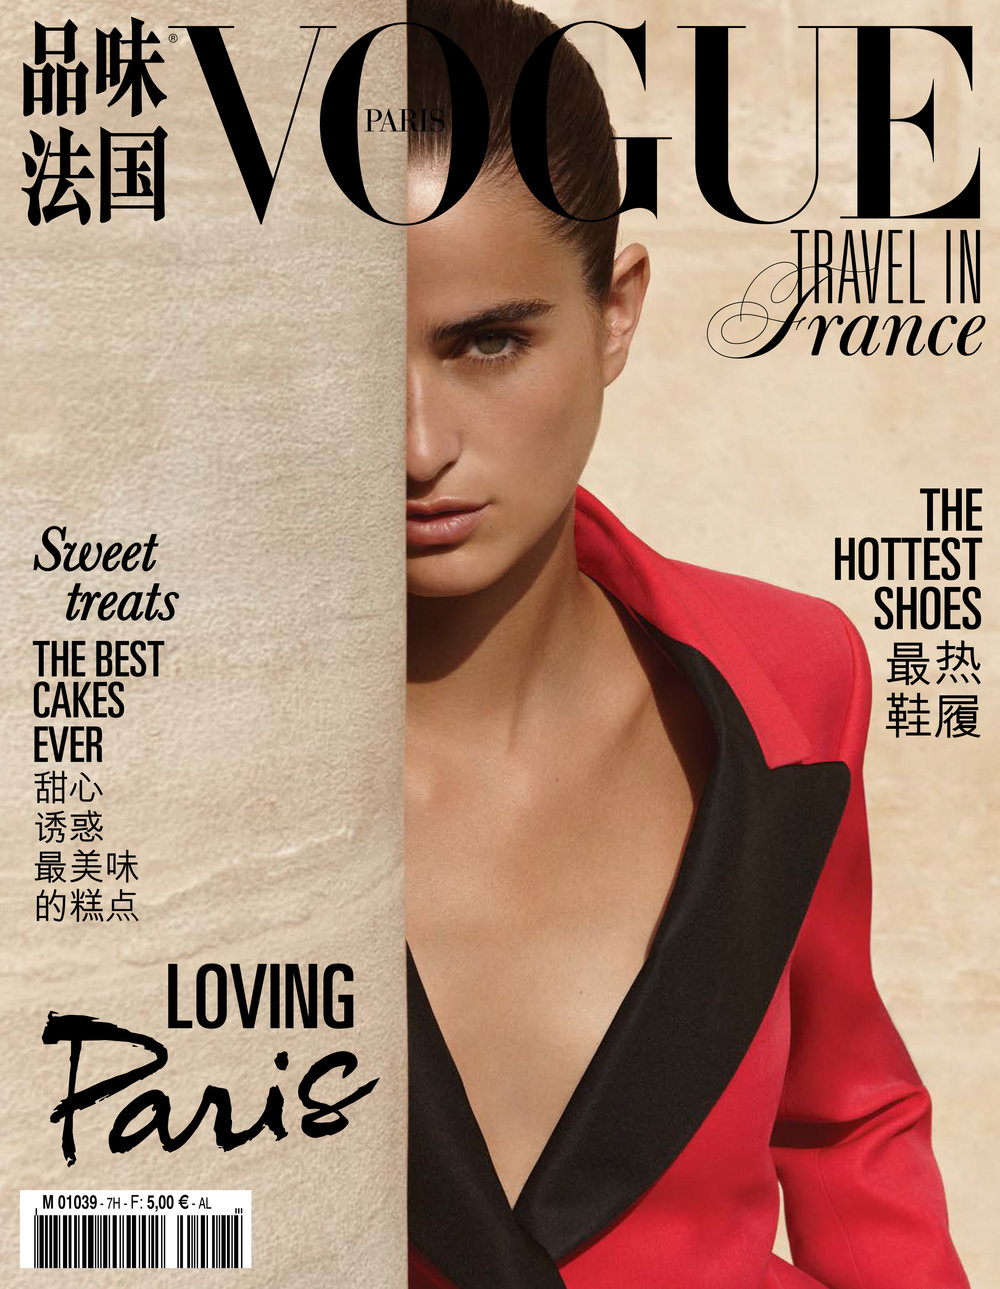 Vogue Travel in France - N°9 October 2016  Photographer - Nagi Sakai  Model - Loulou Robert